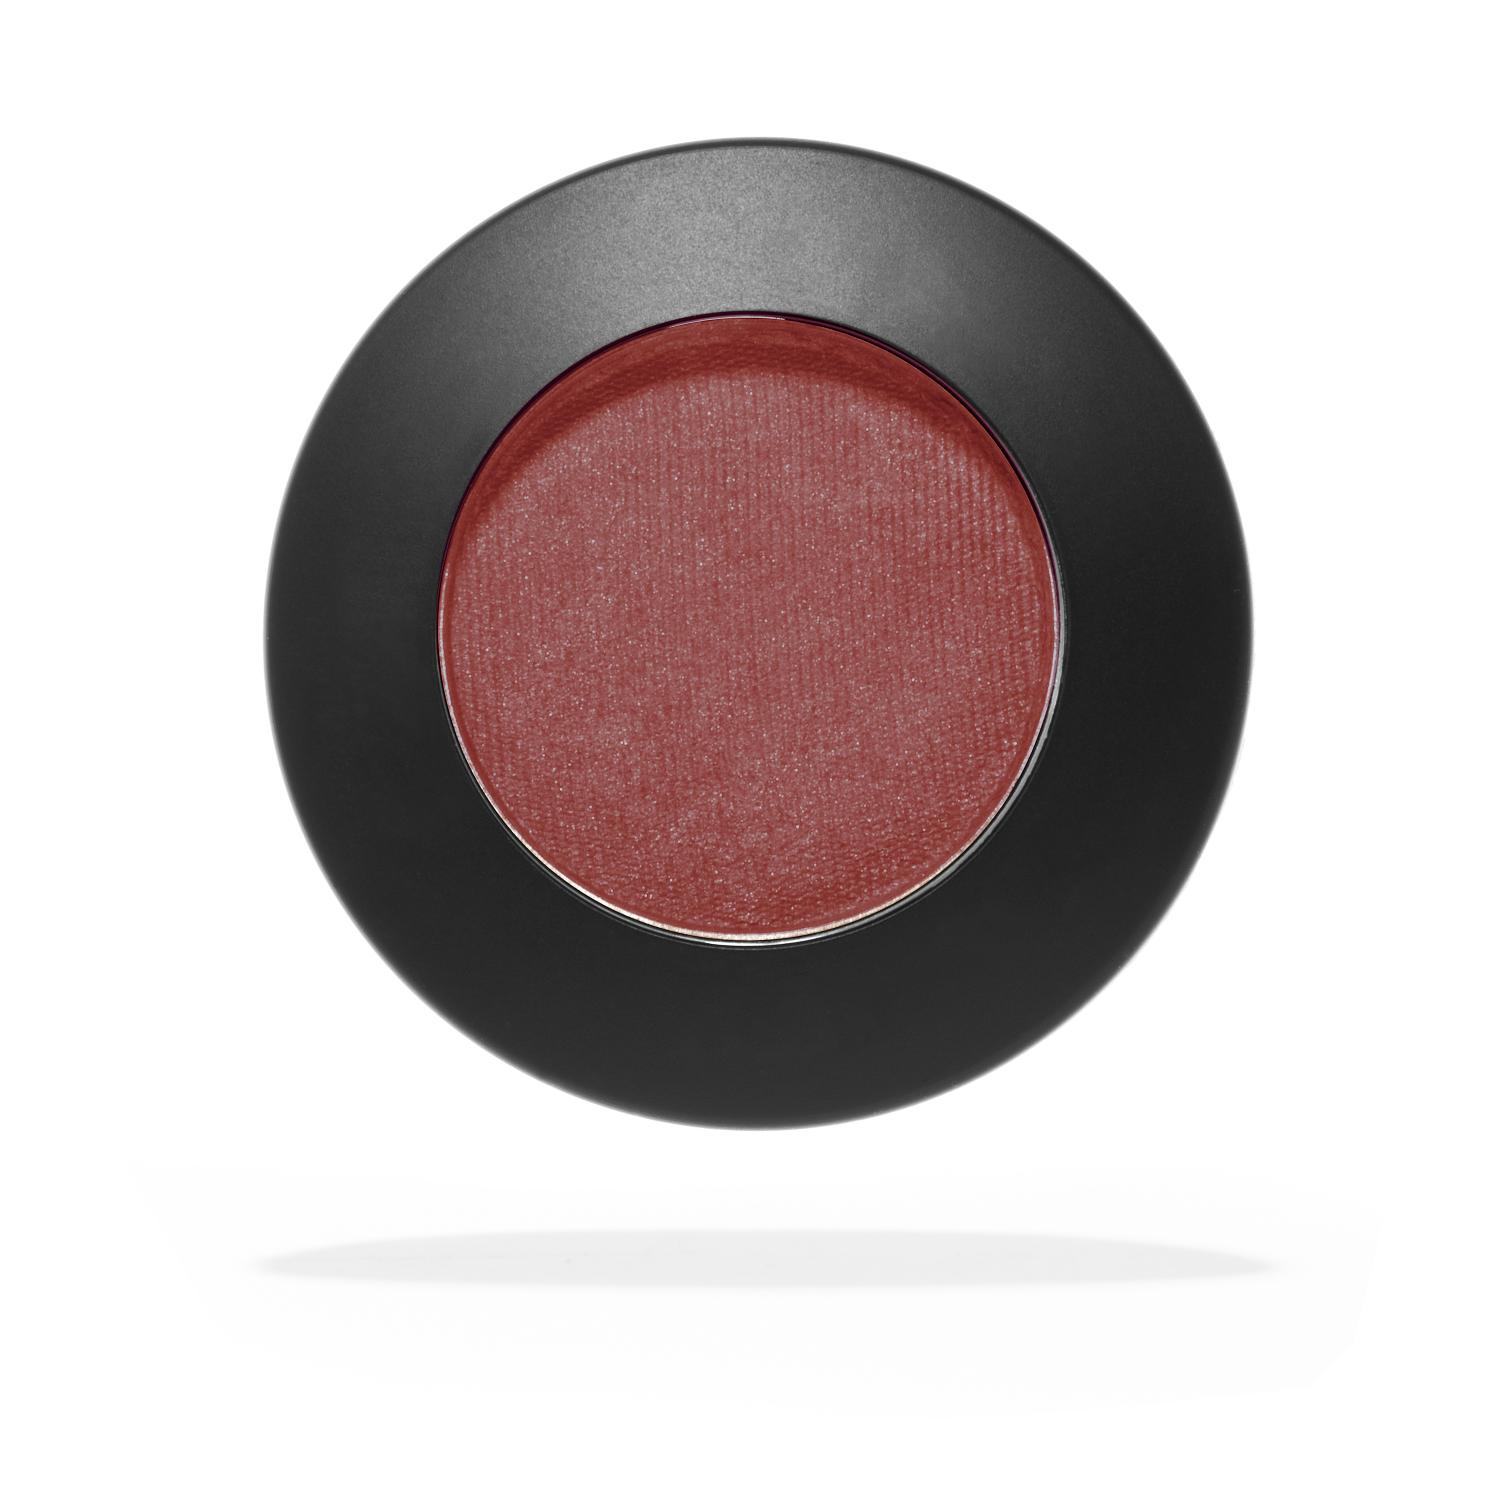 PELA - MICRONIZED EYE SHADOW